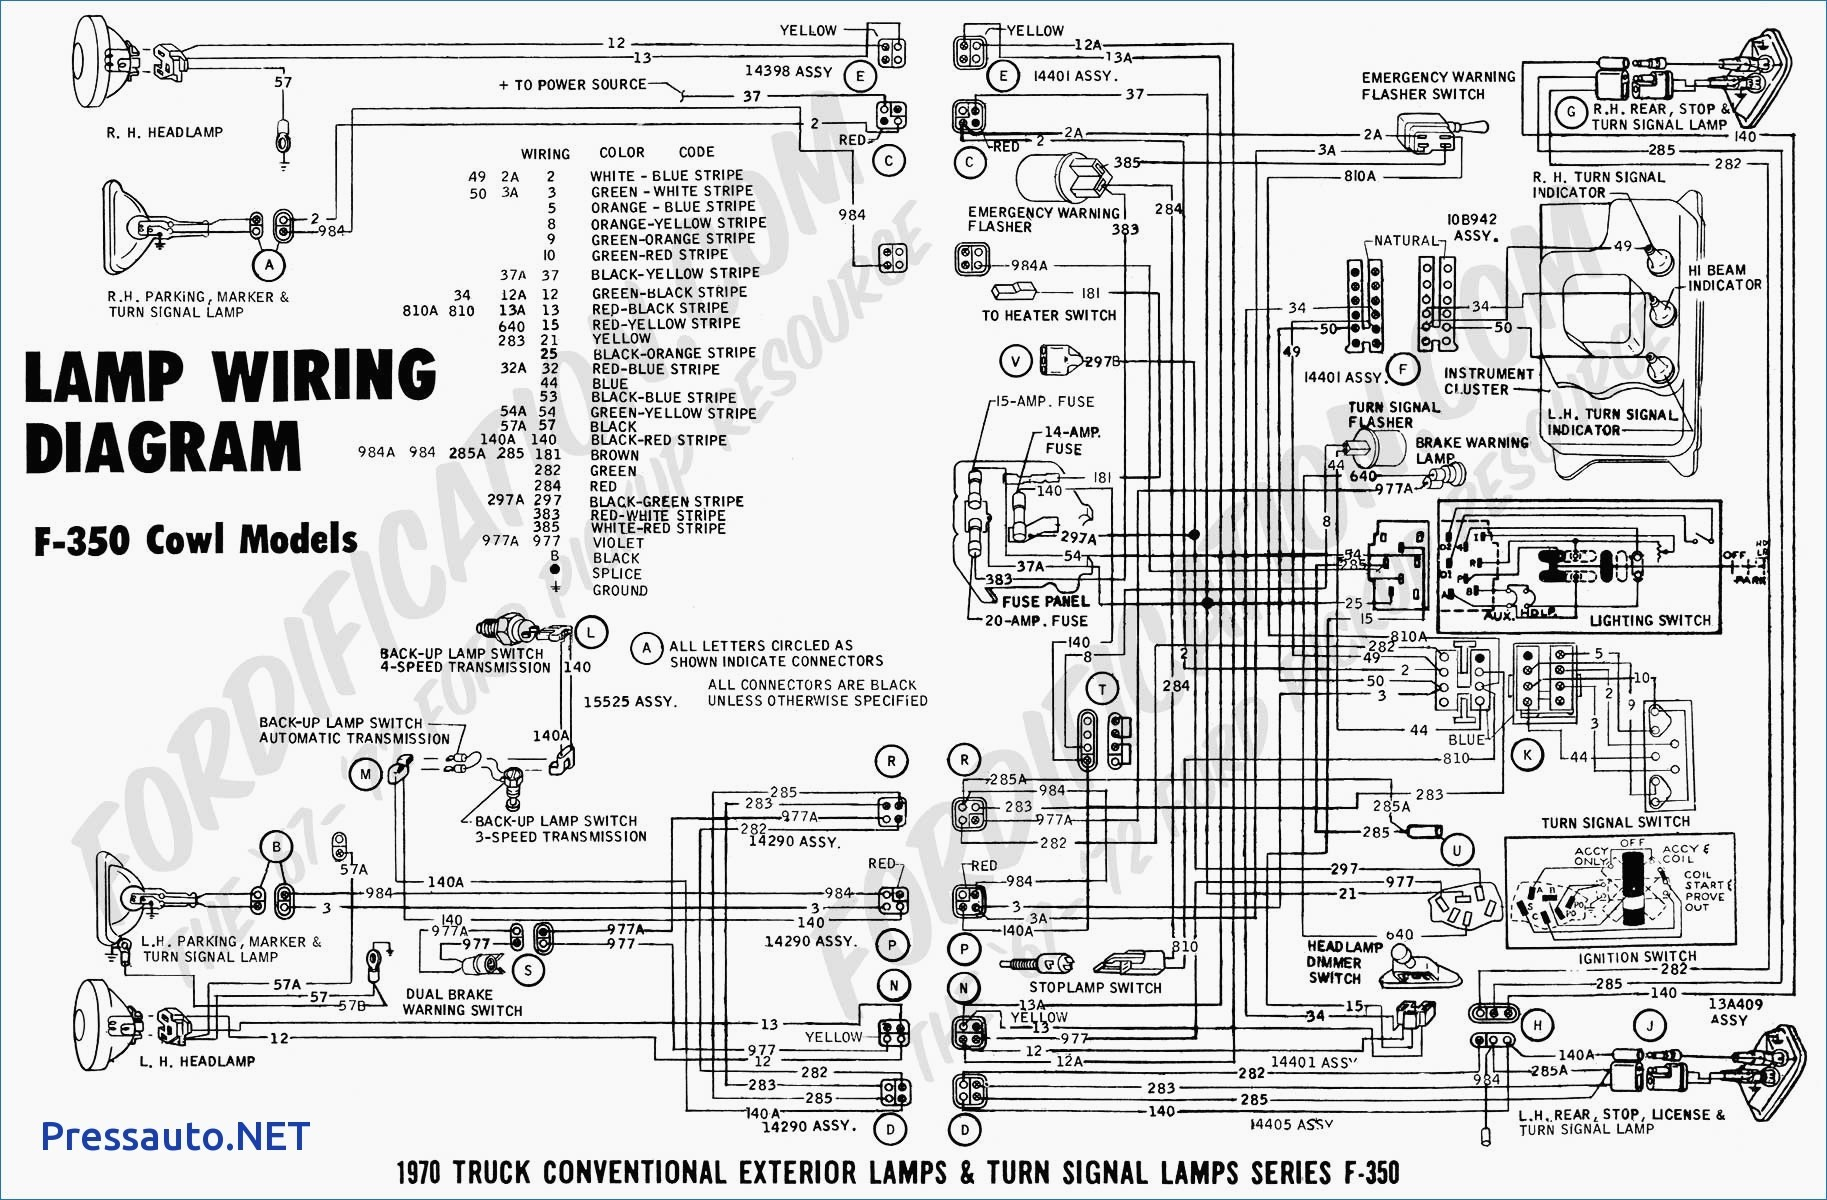 1997 ford Explorer Engine Diagram I Need the Wiring Diagram for A 1996 ford Explorer Radio 1997 Also Of 1997 ford Explorer Engine Diagram I Need the Wiring Diagram for A 1996 ford Explorer Radio 1997 Also